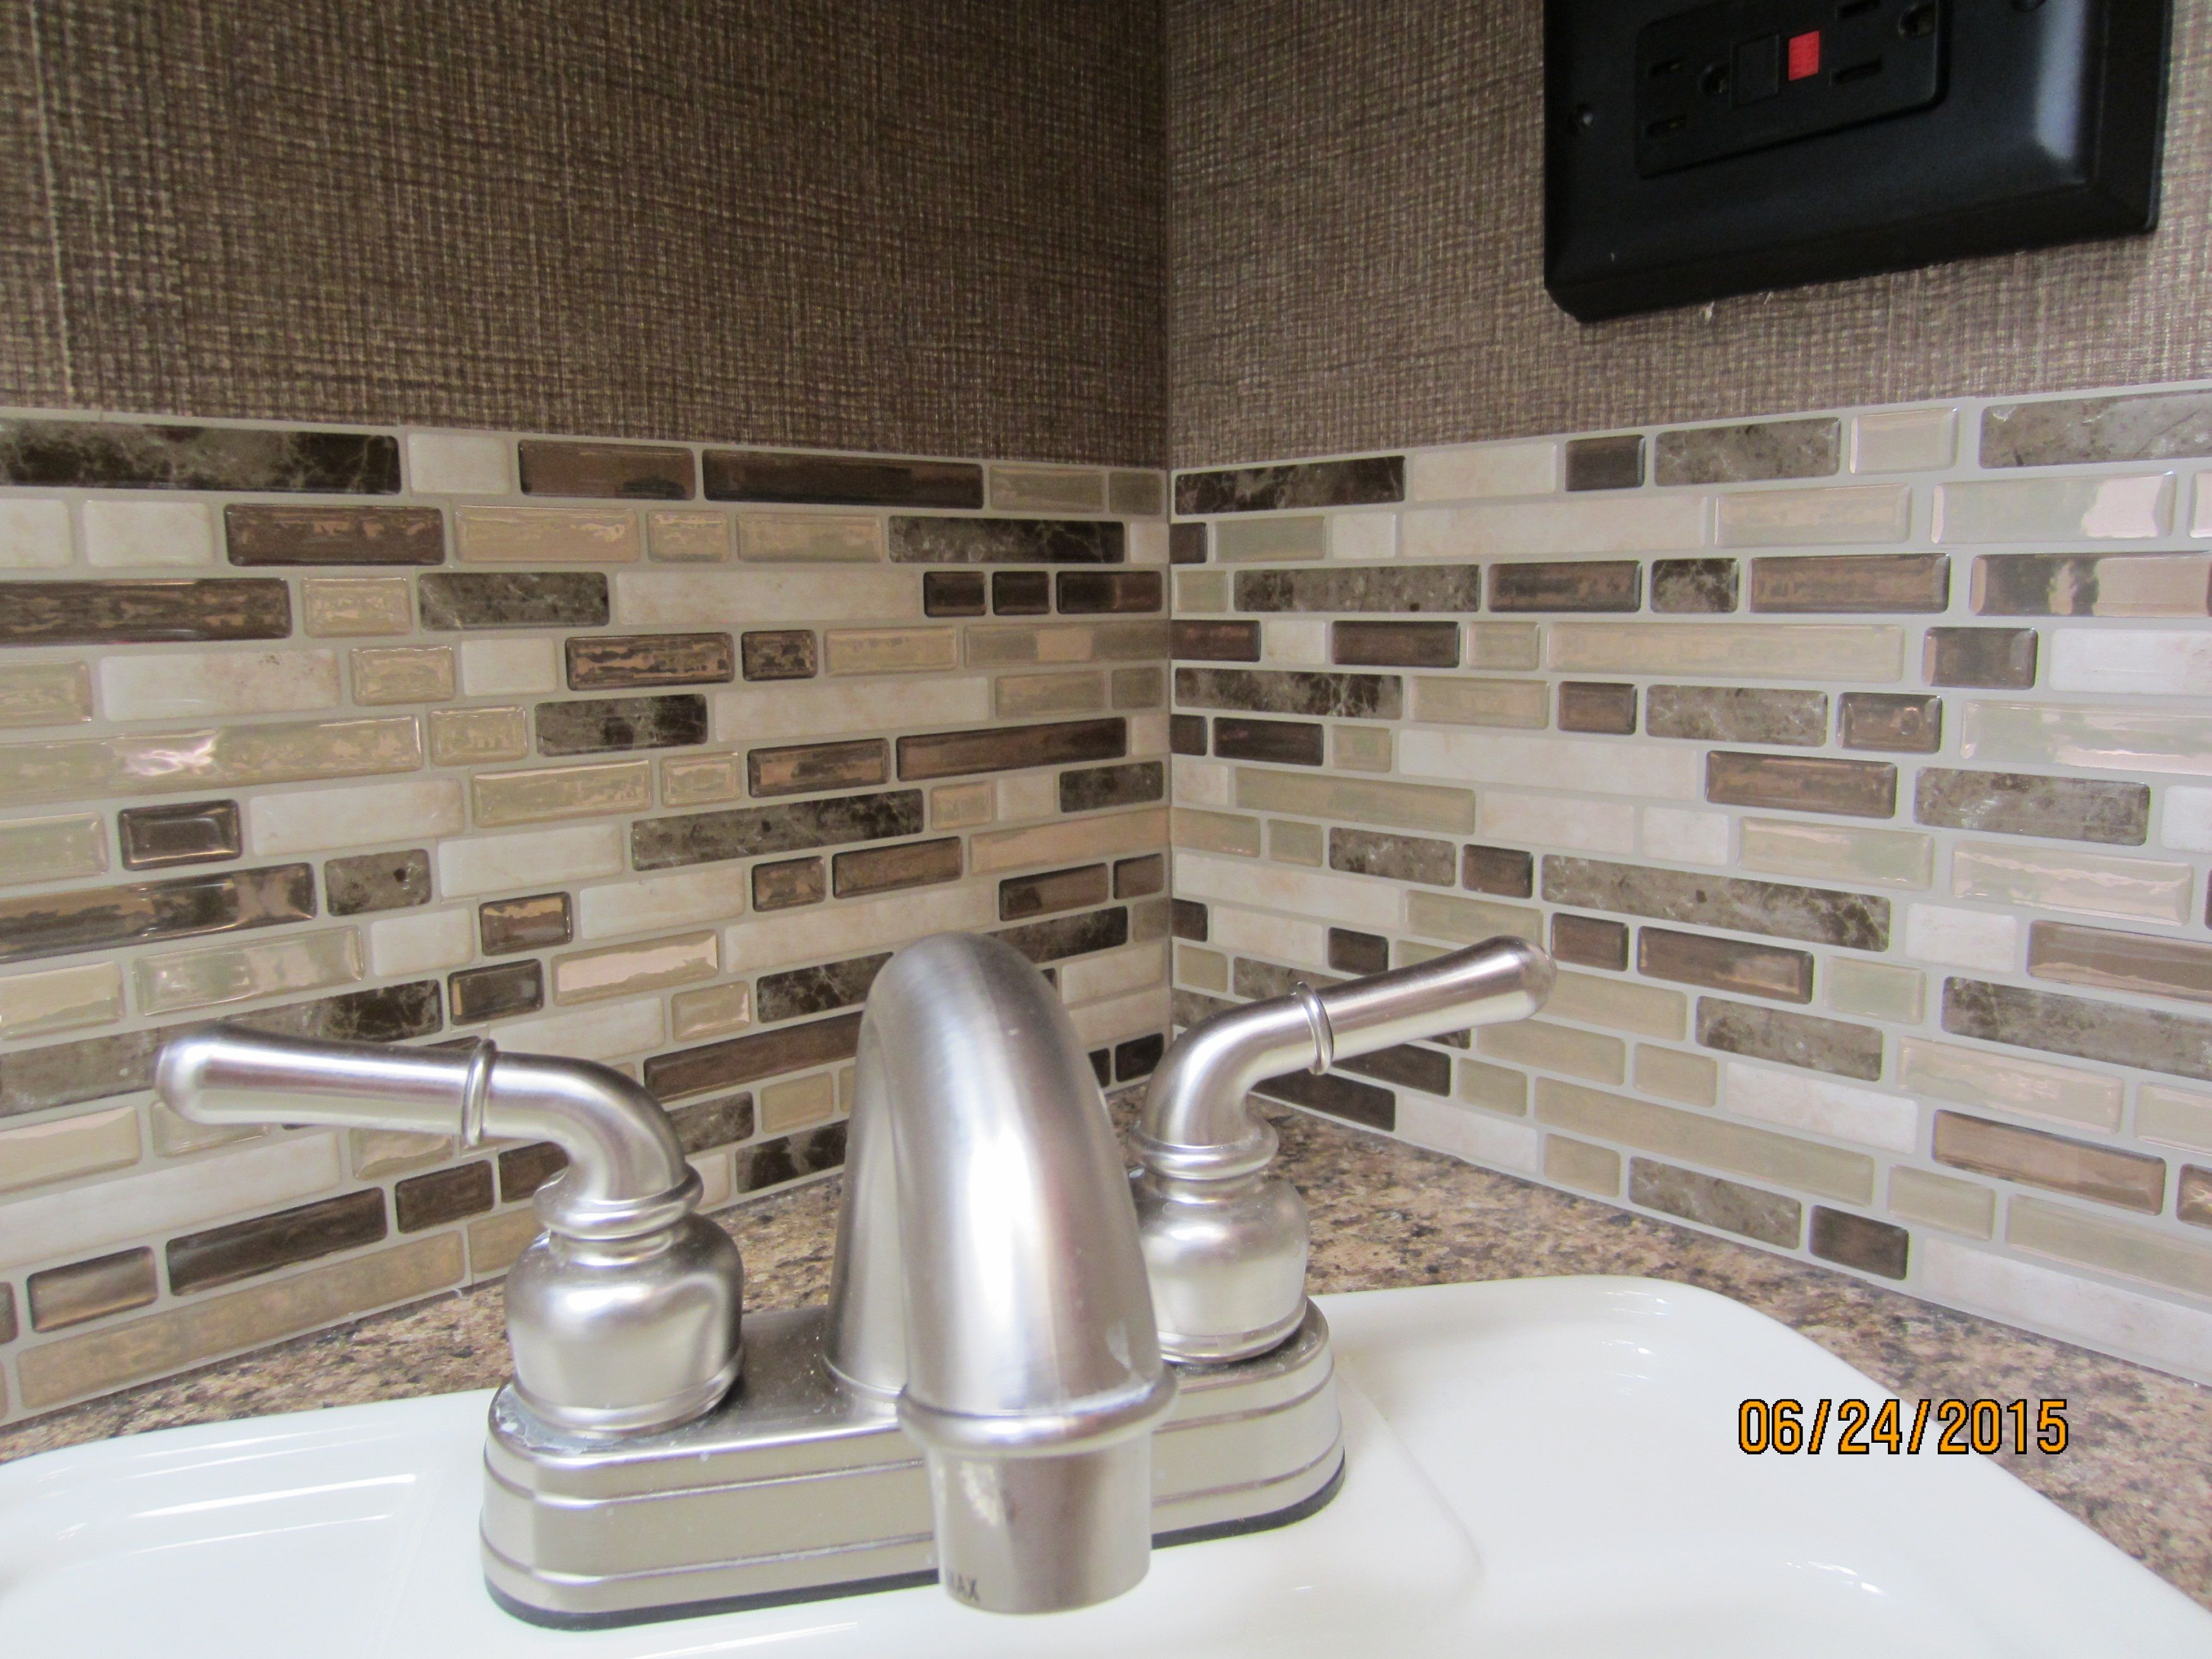 Muretto Durango Peel And Stick Backsplash On A Budget Stick On Kitchen Backsplash Backsplash Smart Tiles